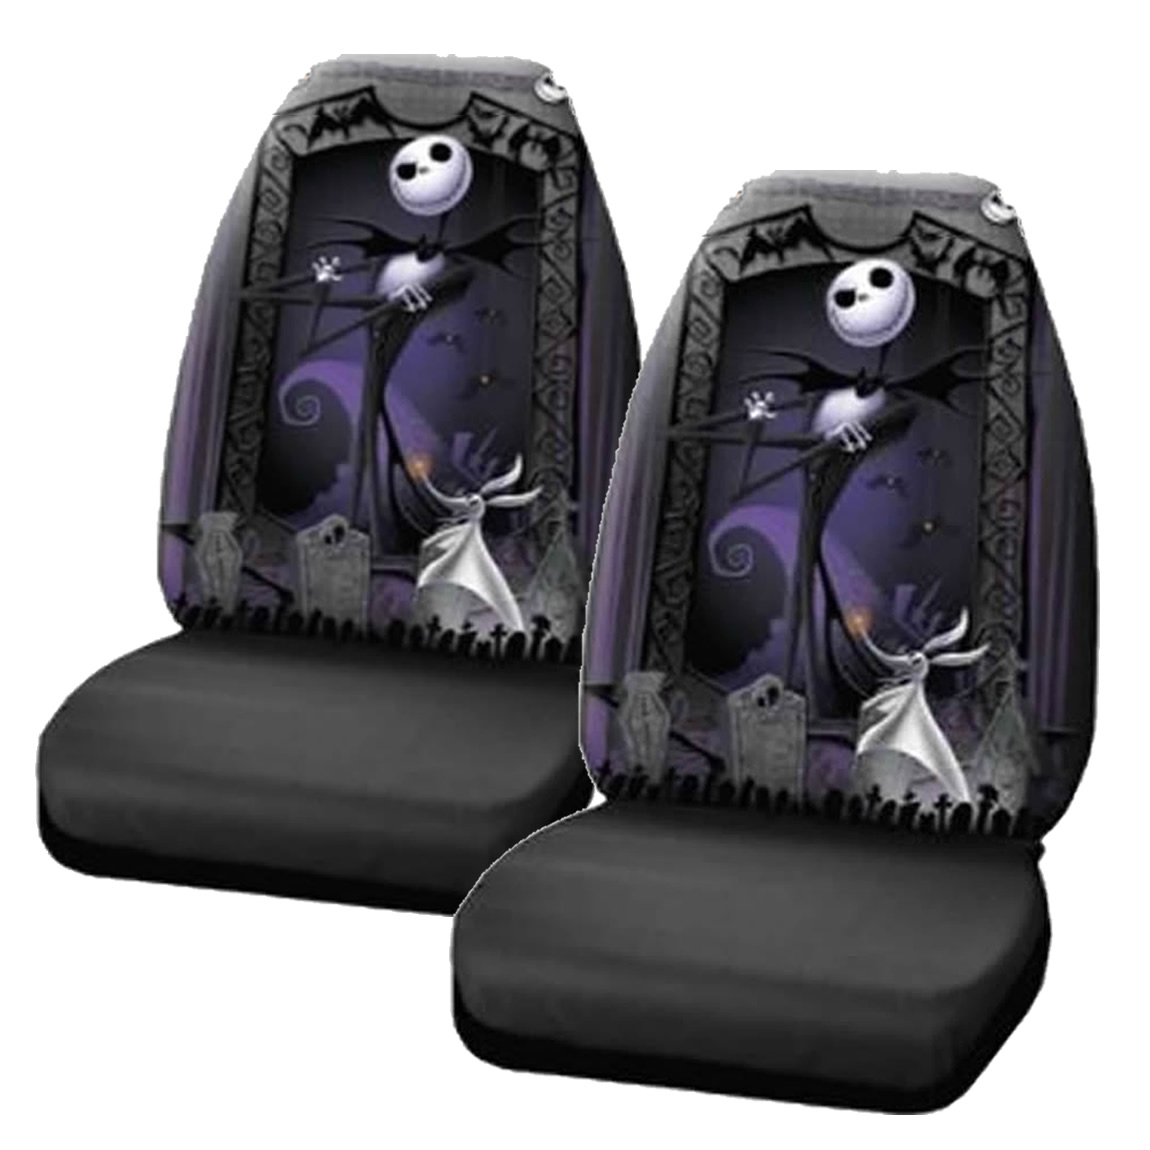 Nightmare Before Christmas Welcome Mat.7pc Nightmare Before ...